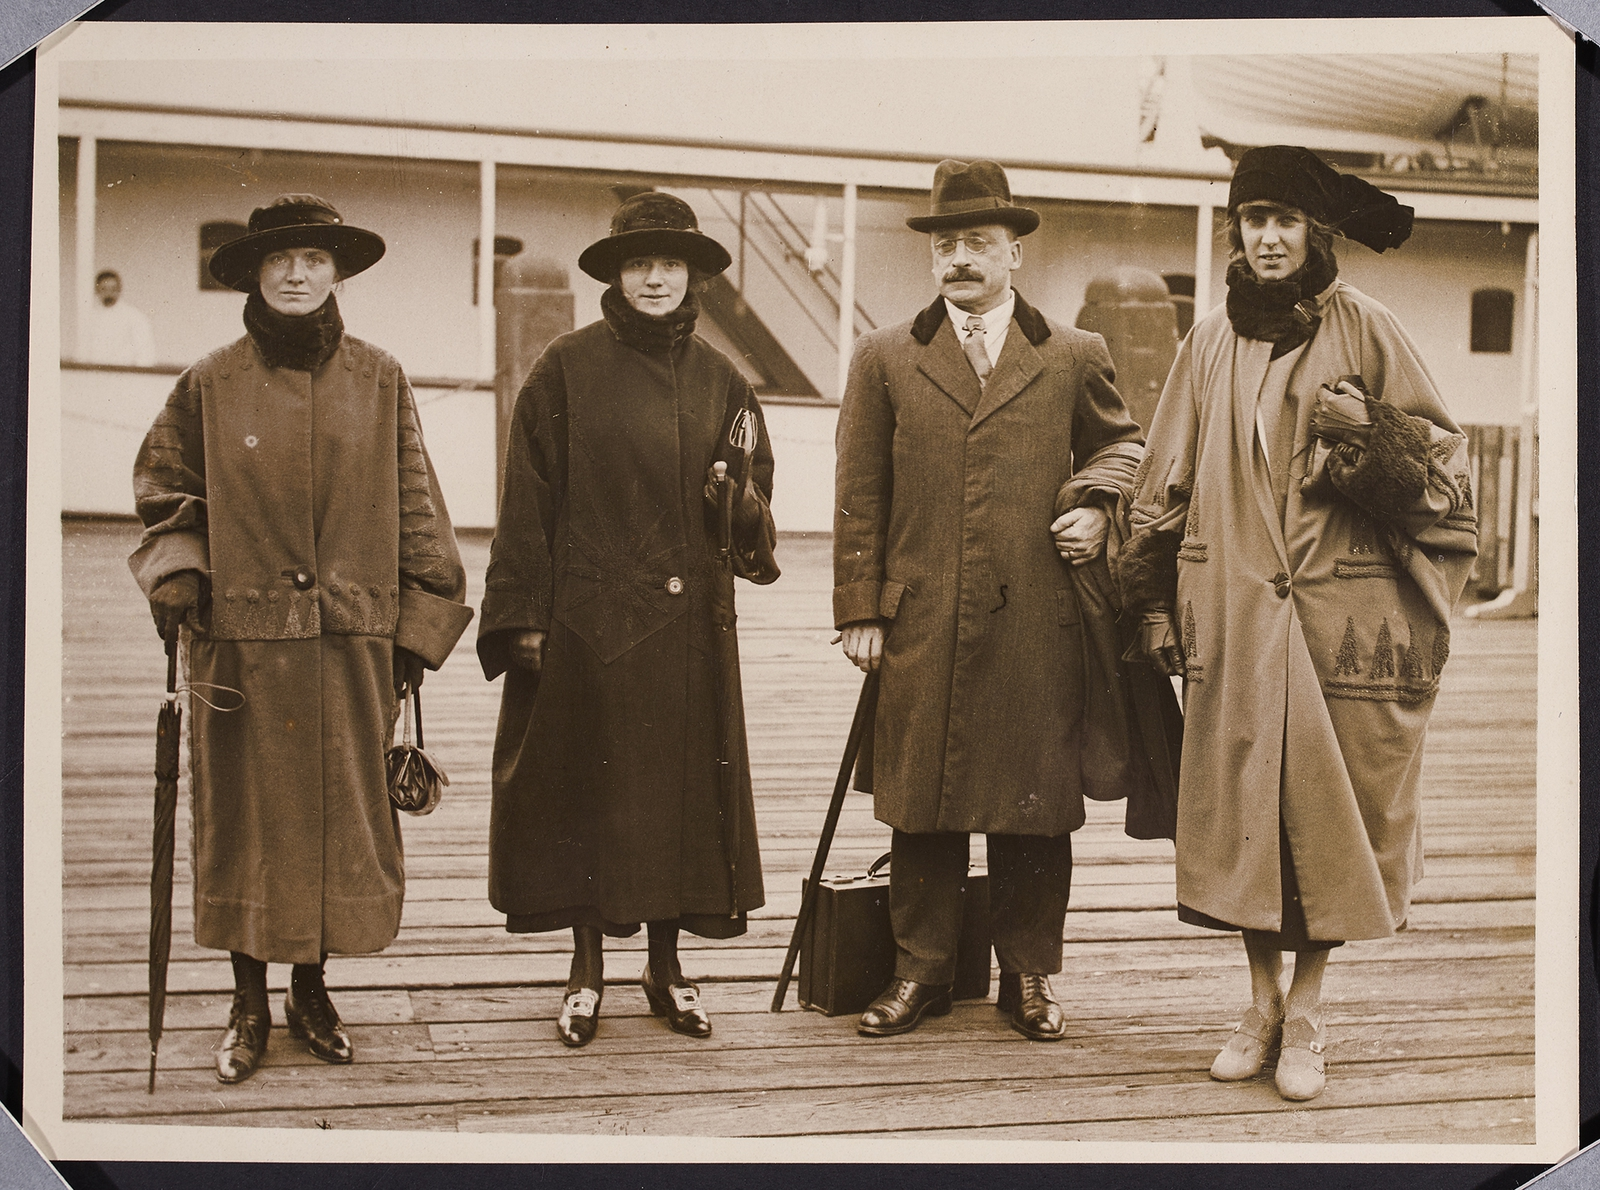 Image - Arthur Griffith en route to London, with three members of the Secretariat: Ellie Lyons, Alice Lyons and Kathleen McKenna. The negotiators could not have functioned without the secretariat (Credit: National Library of Ireland)